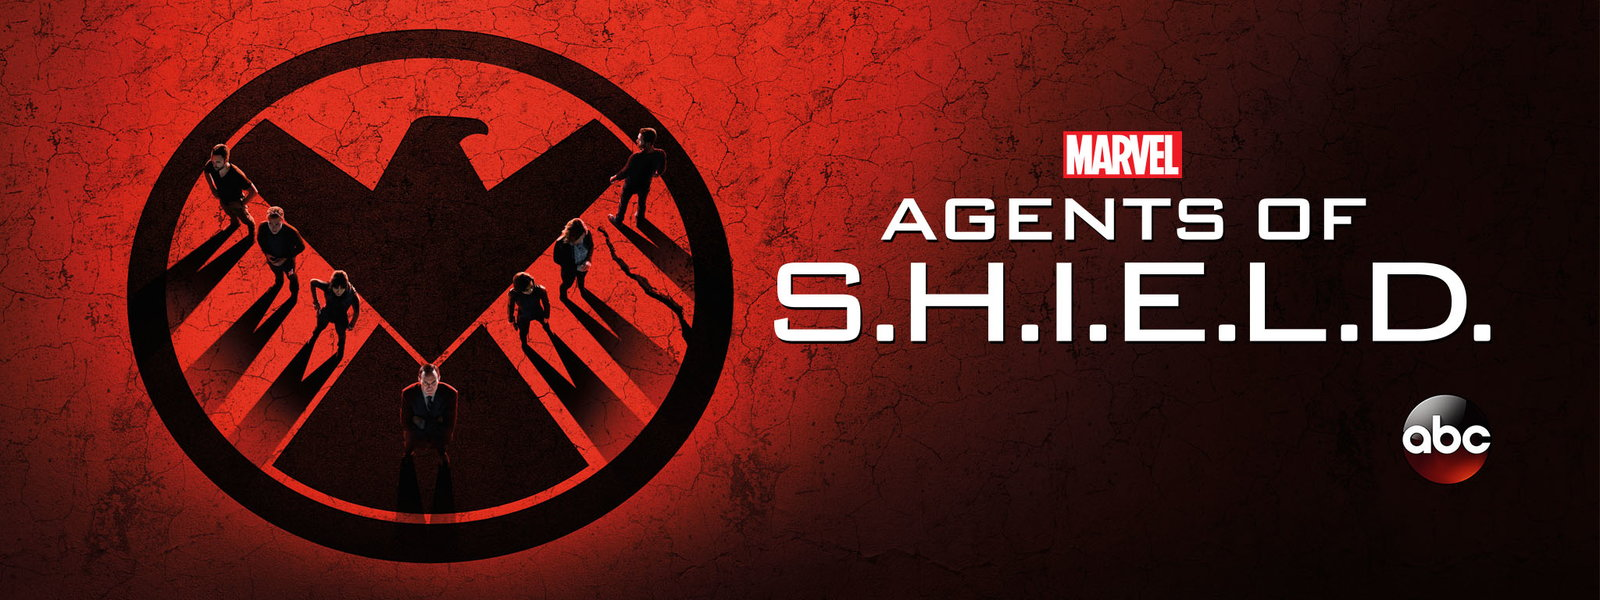 shield-agents-marvel